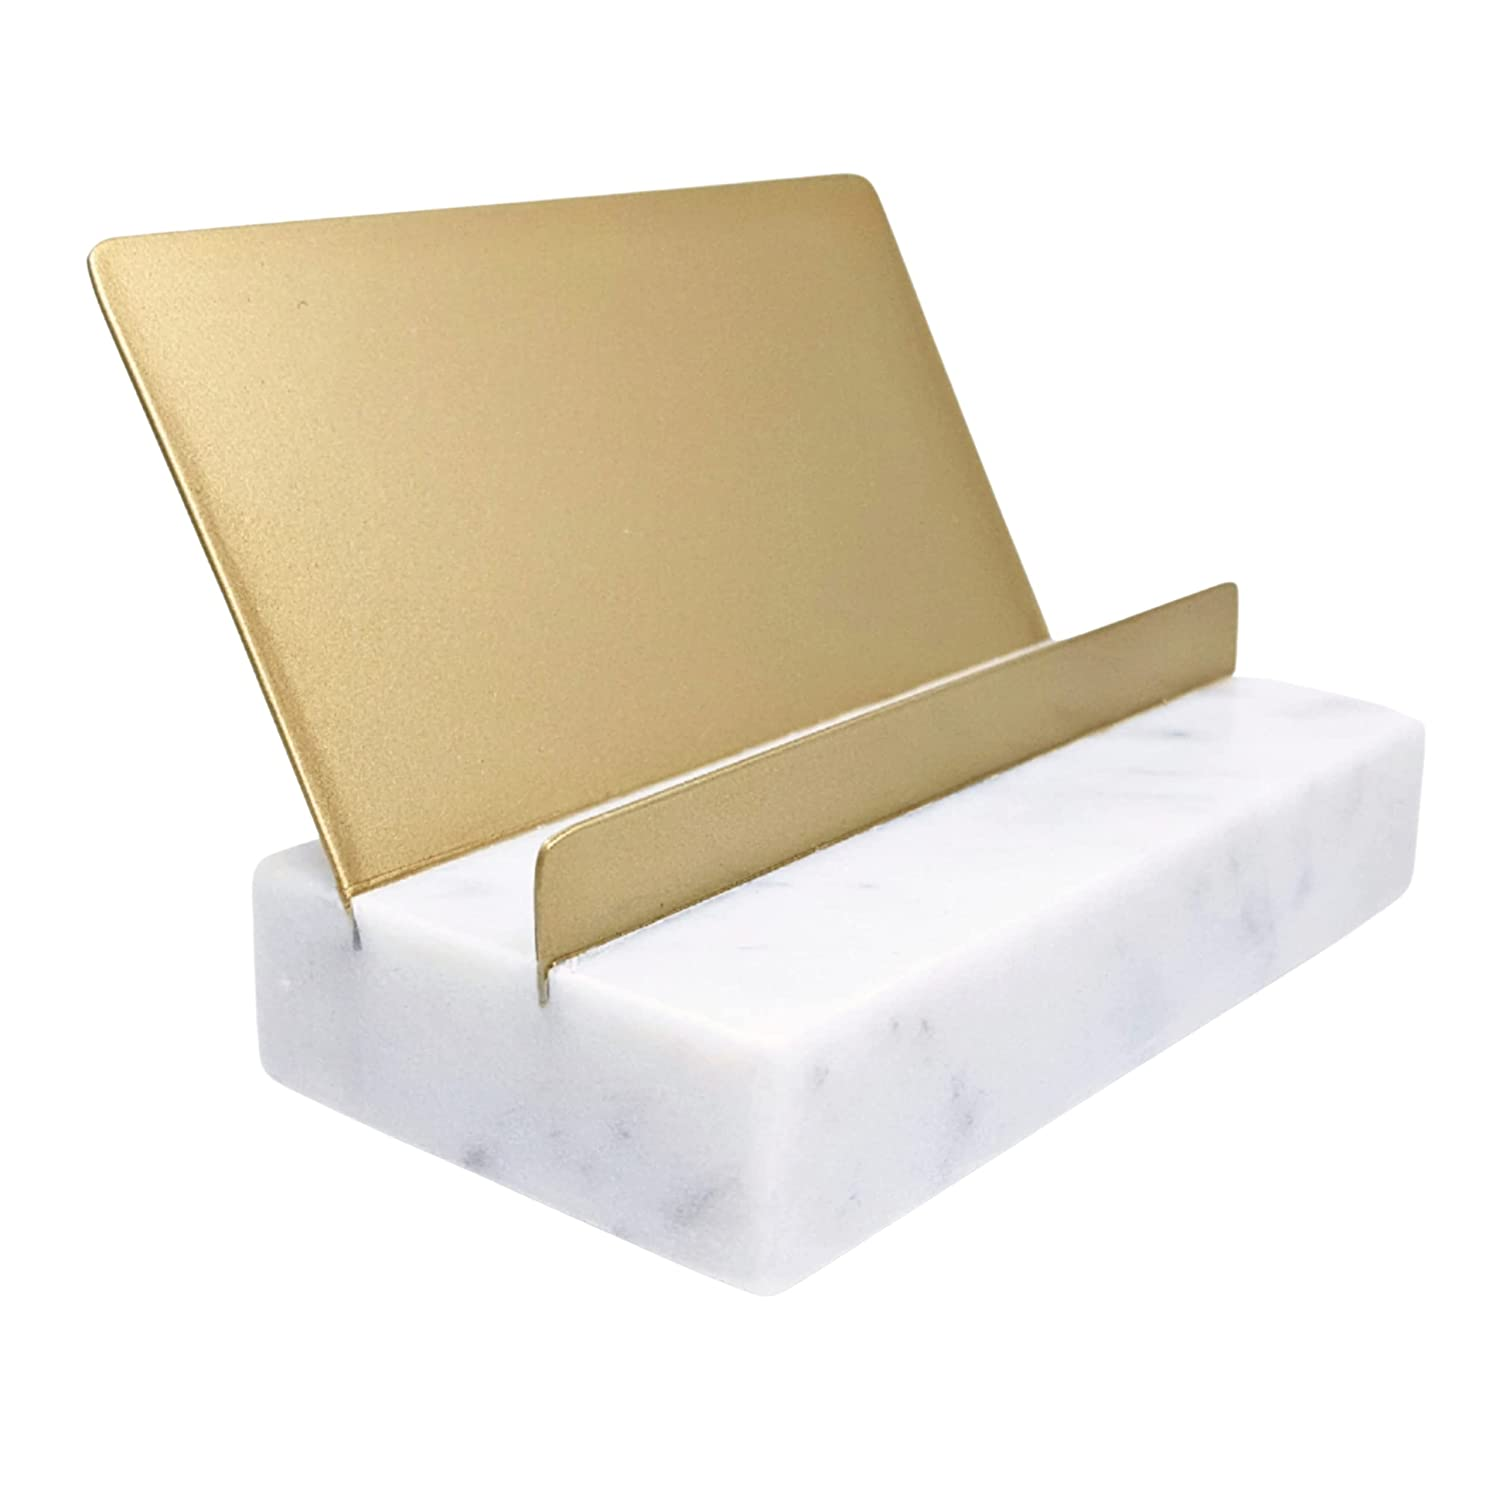 Marble and specialty shop Gold Decor Year-end gift Office Desk Business Accessories Card Hold